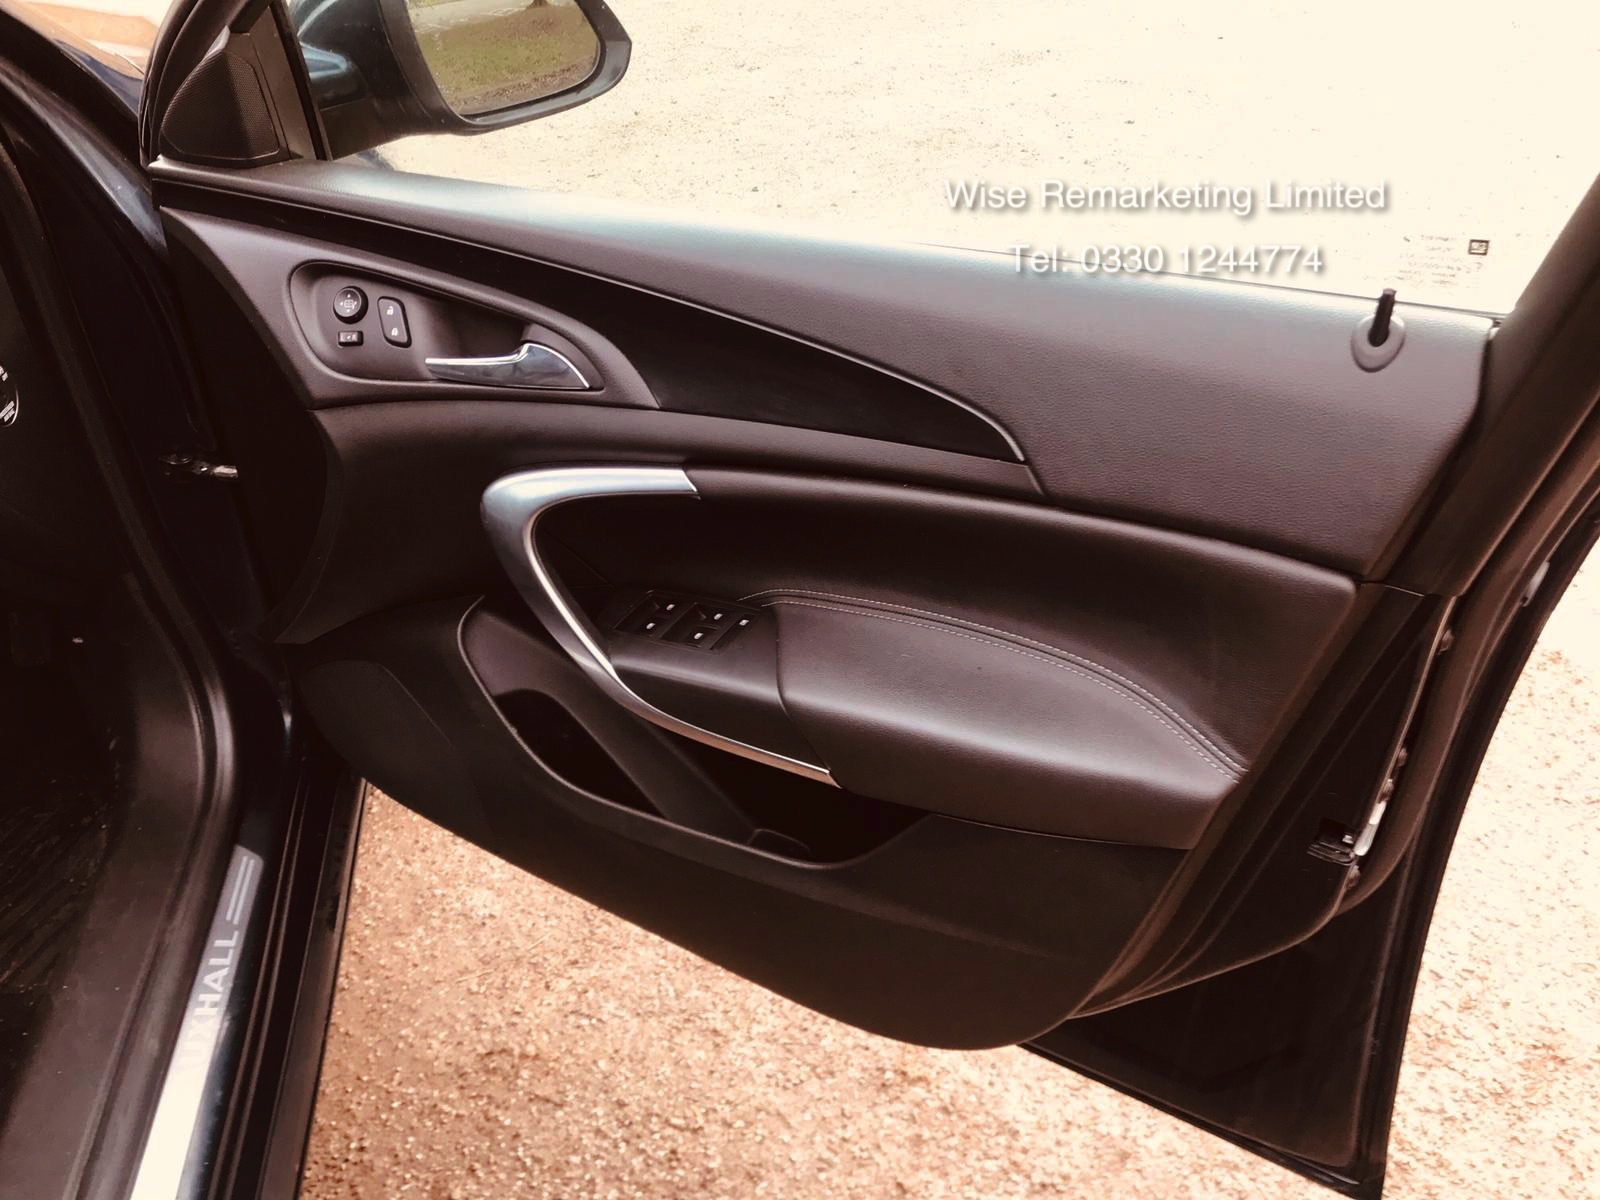 (RESERVE MET) Vauxhall Insignia 2.0 CDTI Techline 6 Speed - 2014 Model - Part Leather - - Image 16 of 20